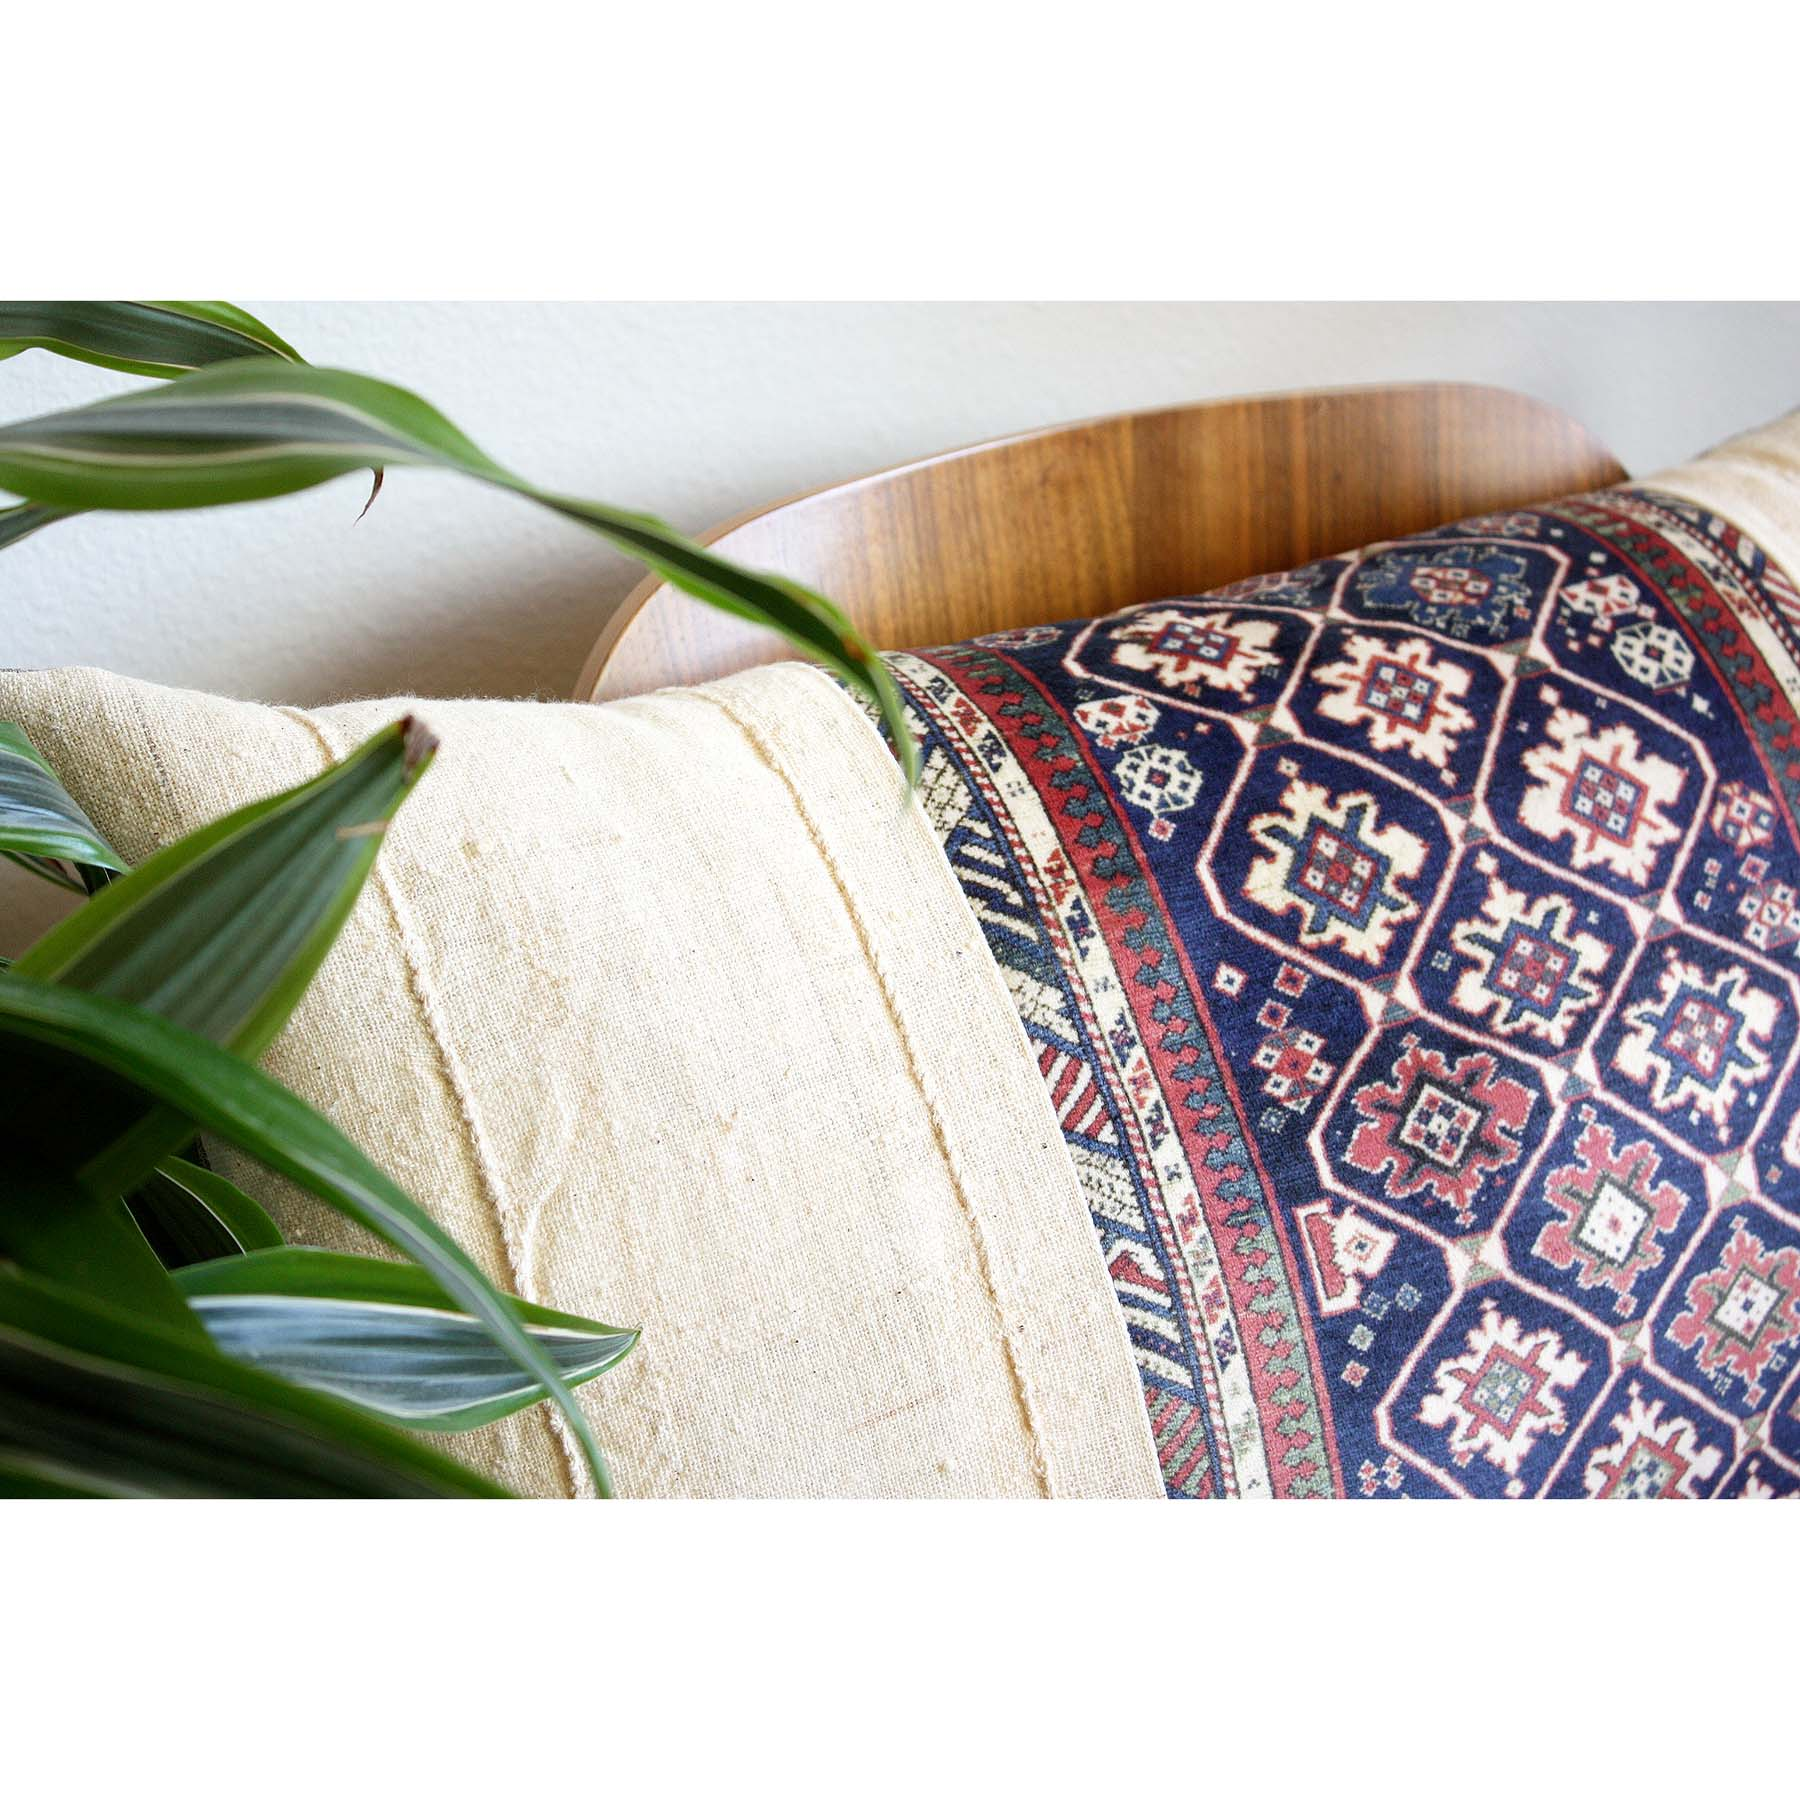 15x25 Lumbar - White Mudcloth and Rug Print Velvet Lumbar Pillow Cover -  Rose Gold Zipper